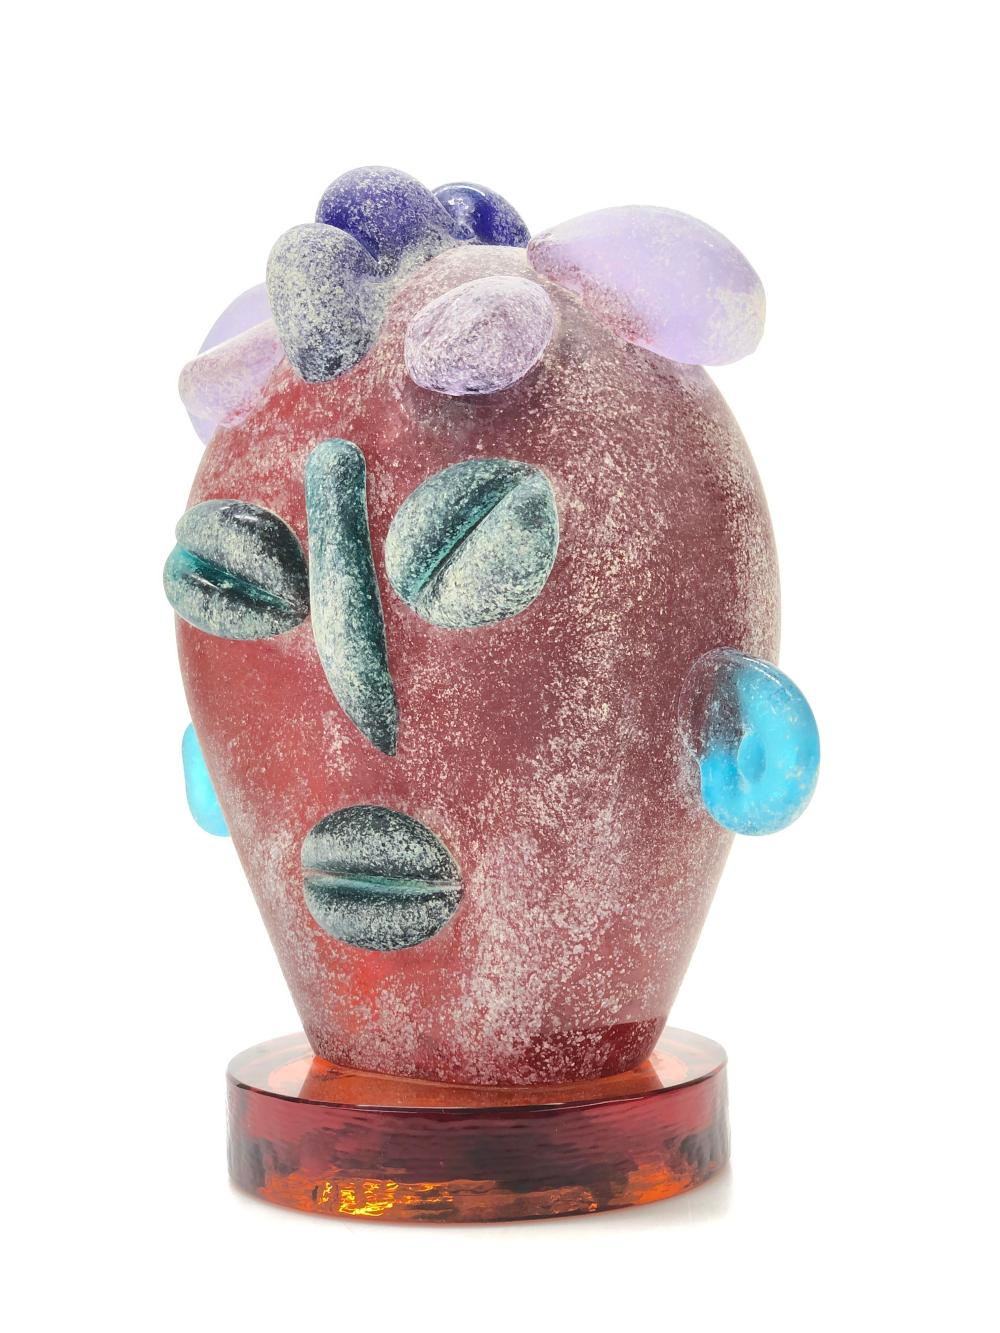 ABSTRACT ETCHED FUSED GLASS SCULPTURAL ART GLASS BUST